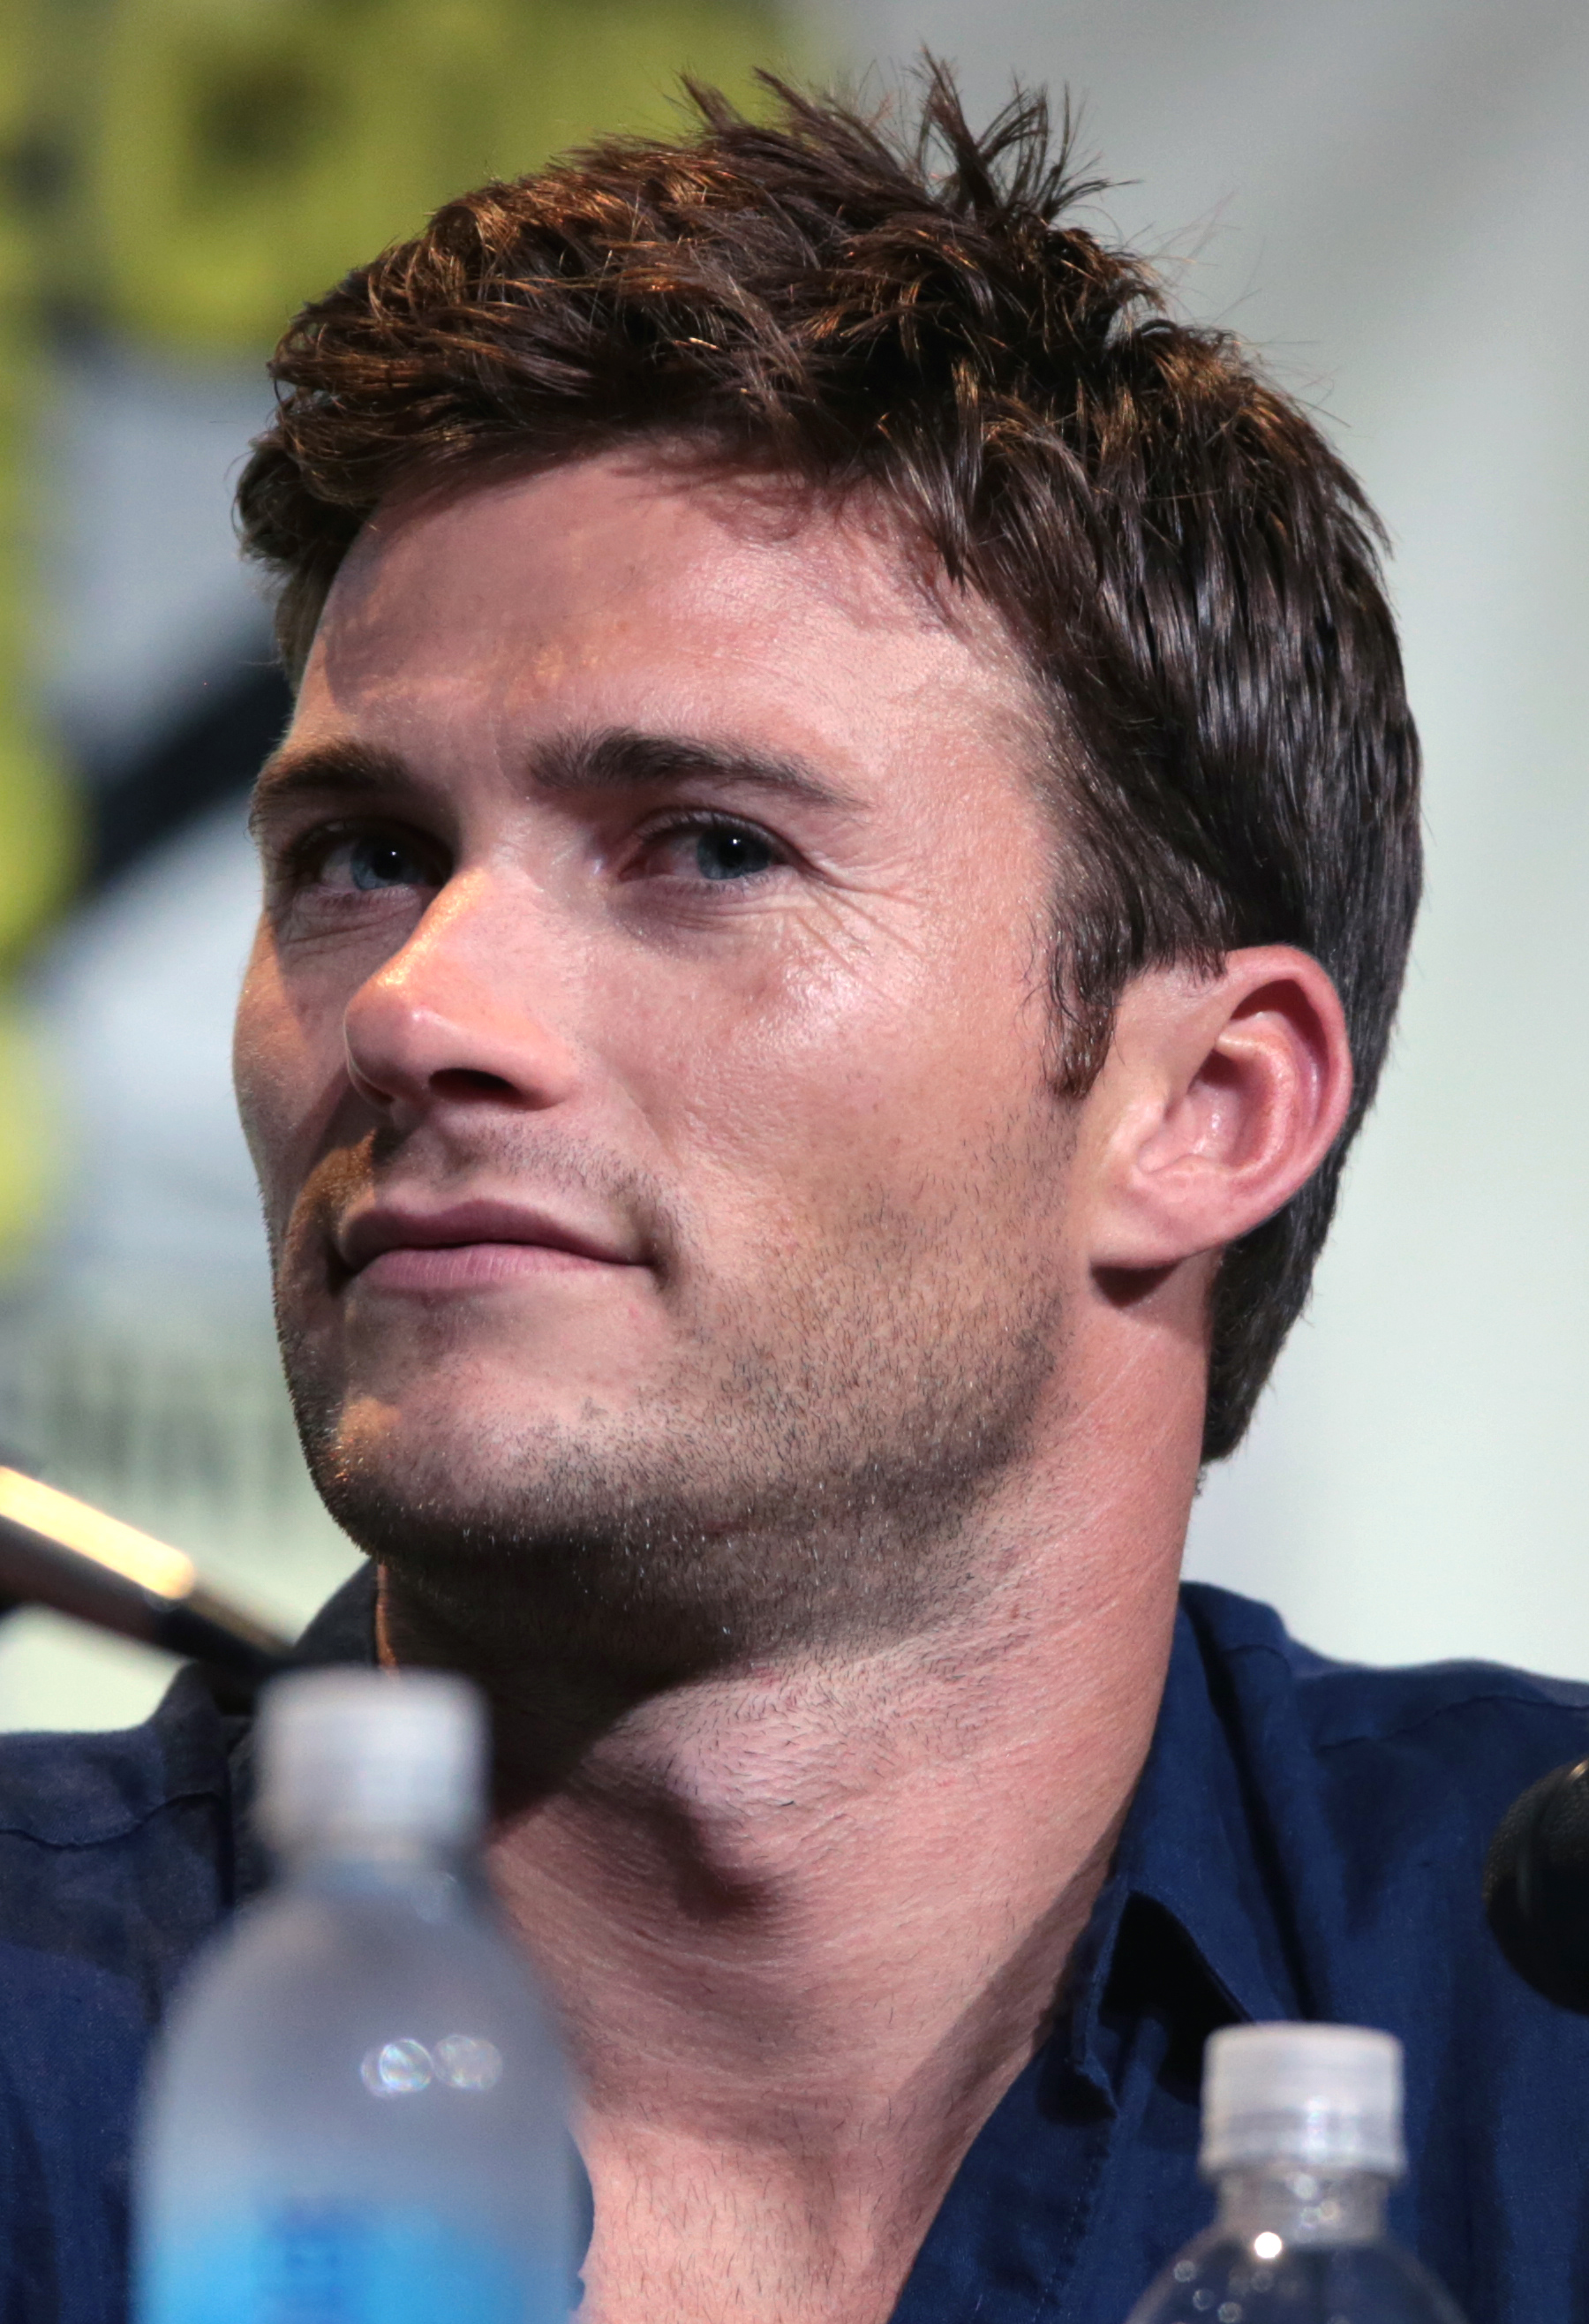 The 32-year old son of father Clint Eastwood and mother Jacelyn Reeves Scott Eastwood in 2018 photo. Scott Eastwood earned a  million dollar salary - leaving the net worth at 1 million in 2018